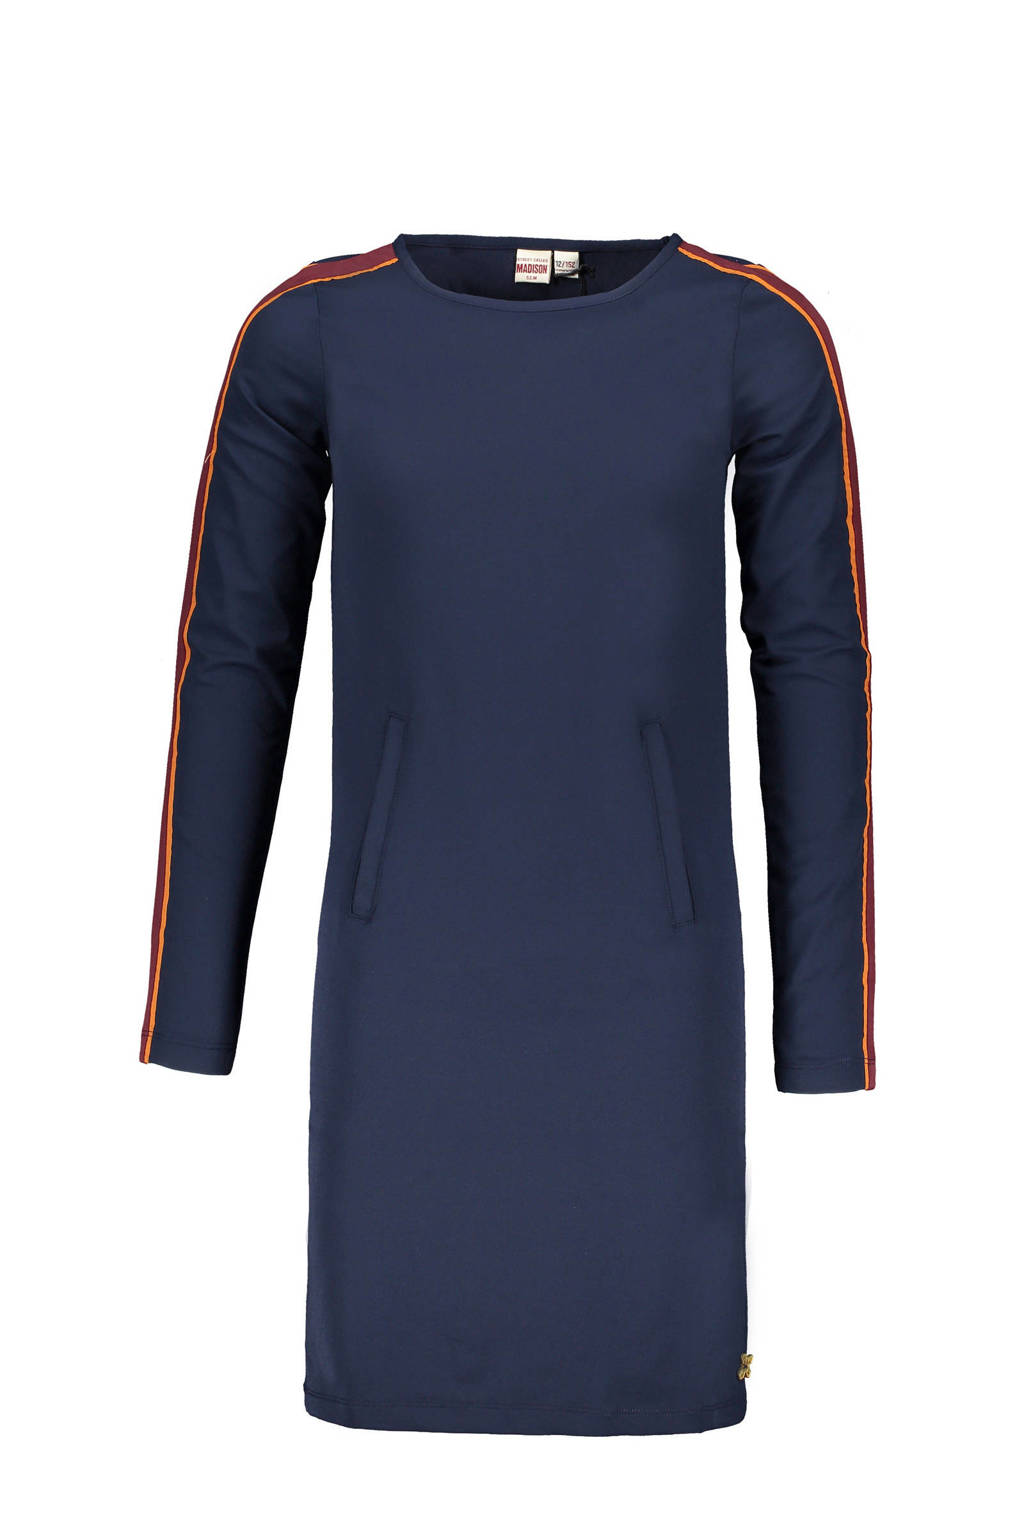 Street called Madison jersey jurk Yes yes met contrastbies donkerblauw, Donkerblauw